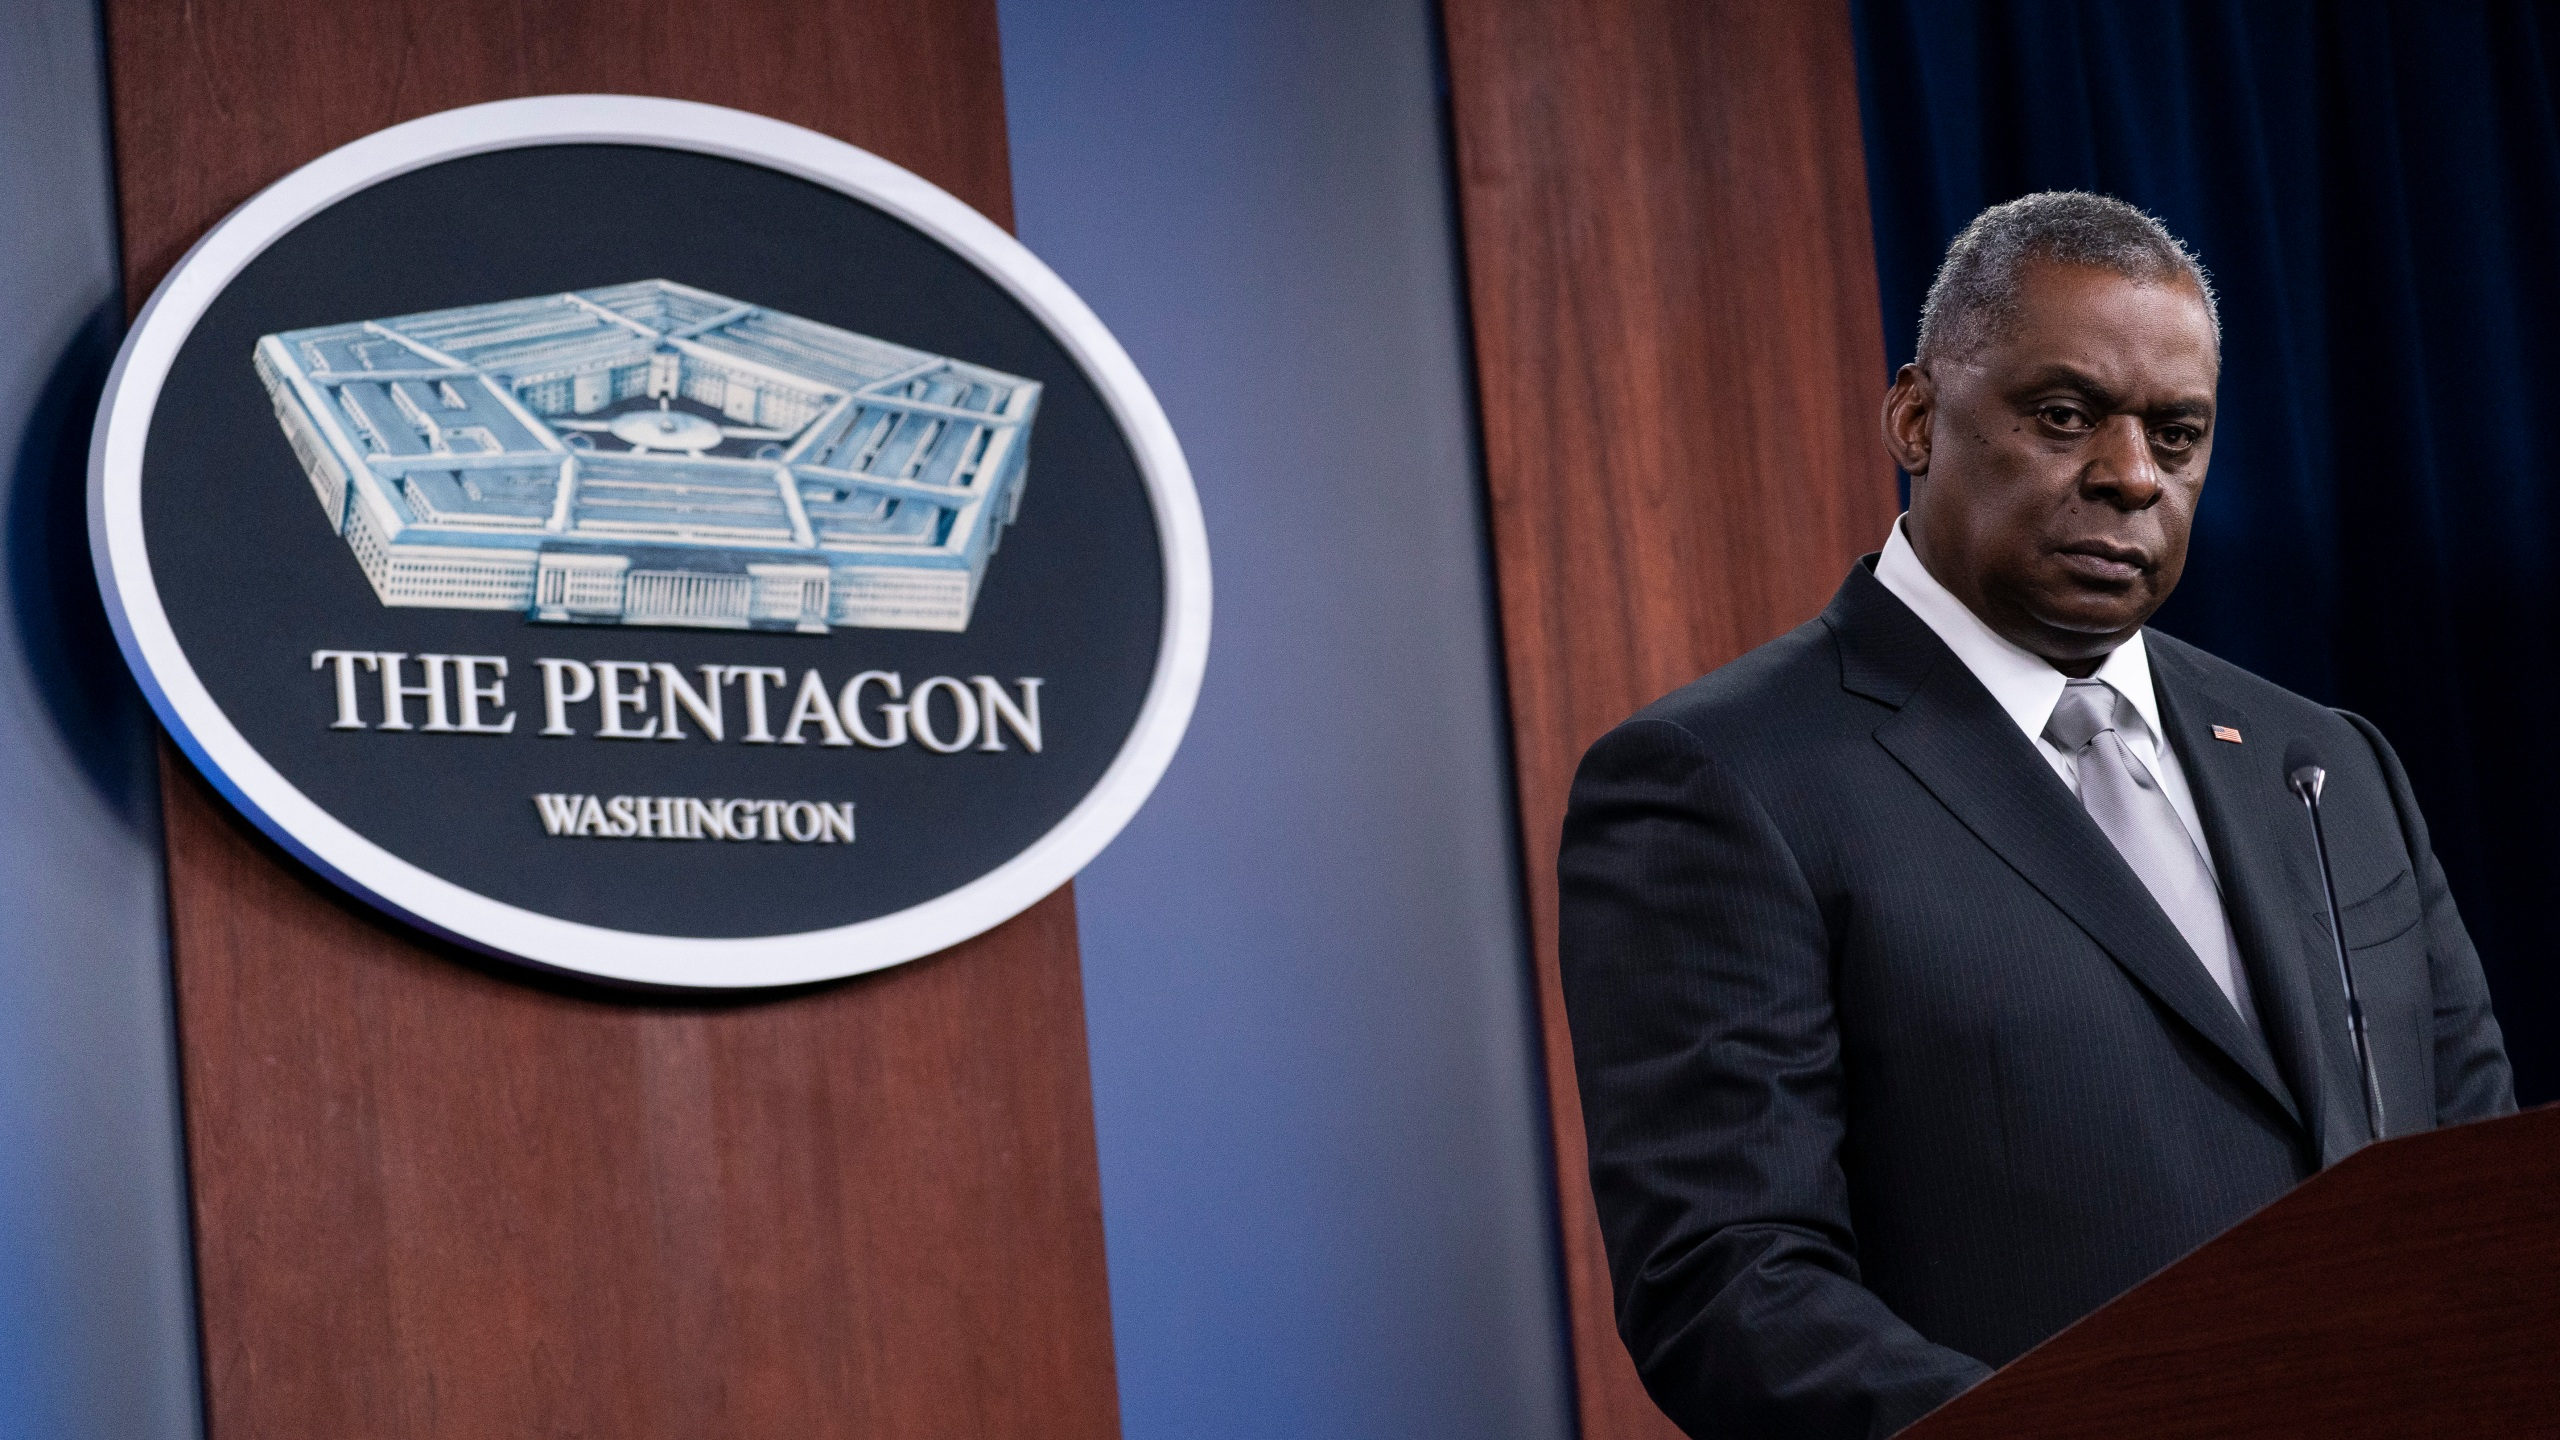 Secretary of Defense Lloyd Austin listens to a question as he speaks during a media briefing at the Pentagon on Feb. 19, 2021. (Alex Brandon / Associated Press)